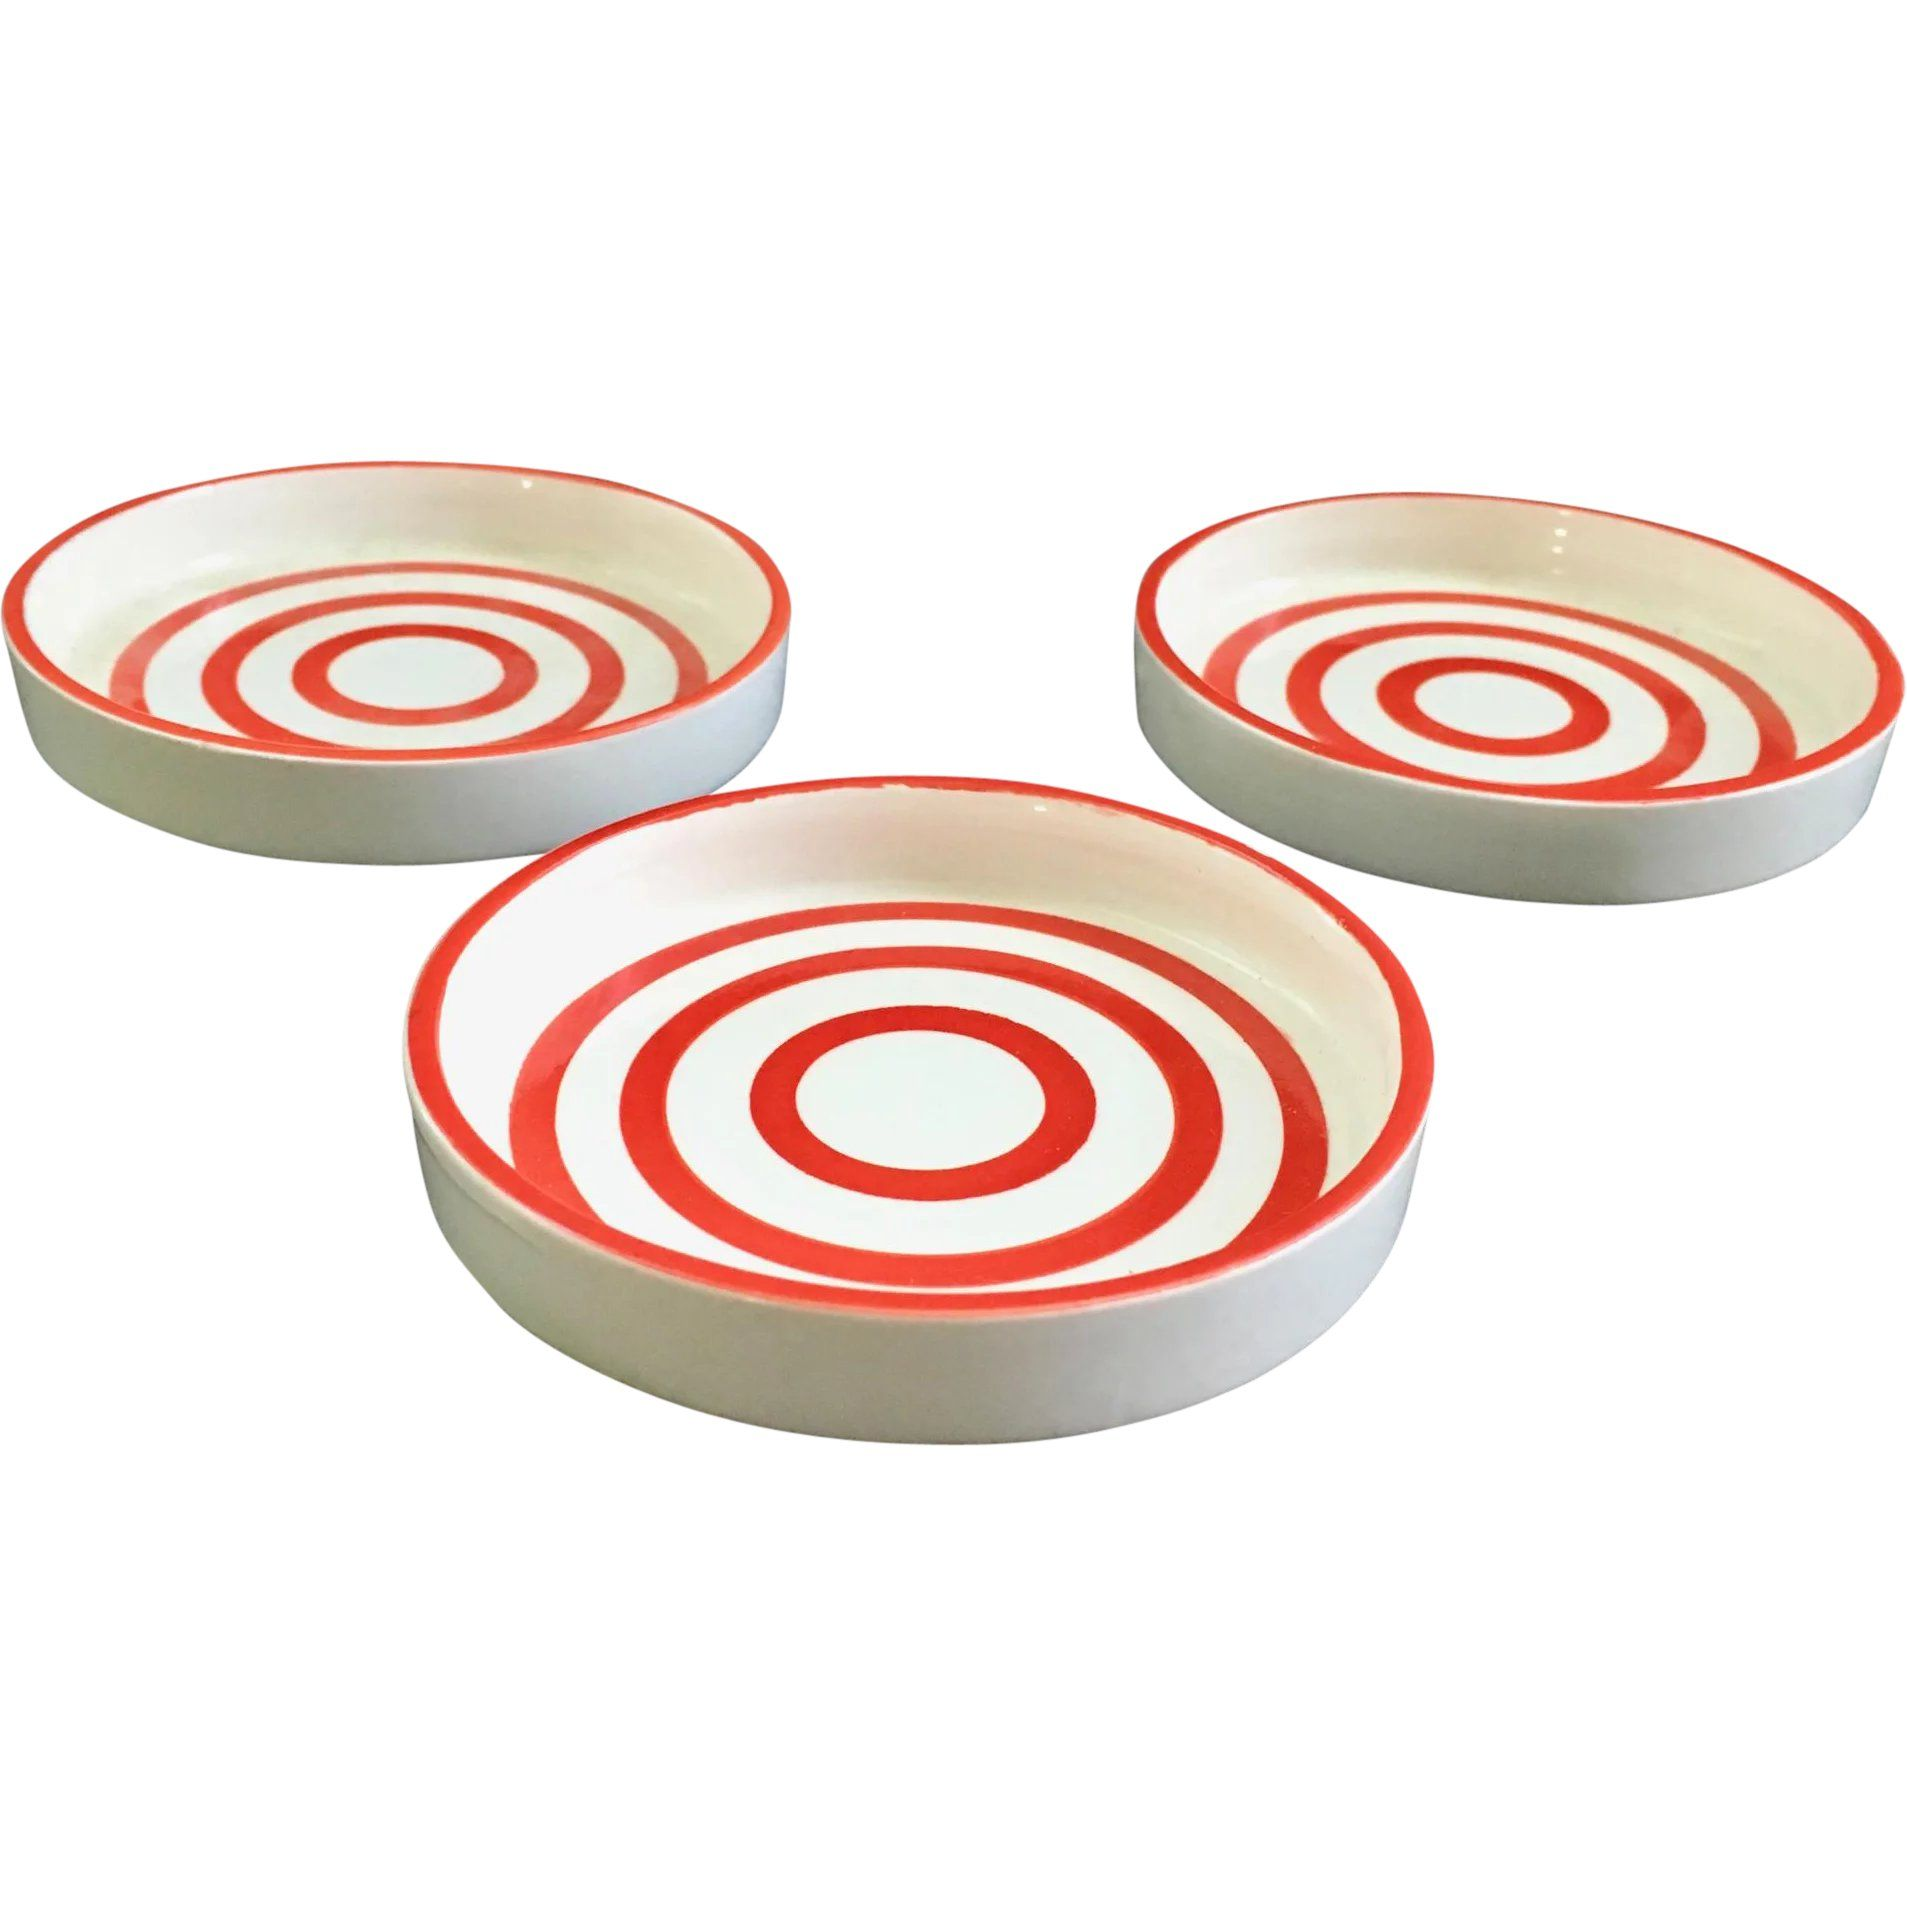 Here Is A Set Of Three Matching Coasters Of The